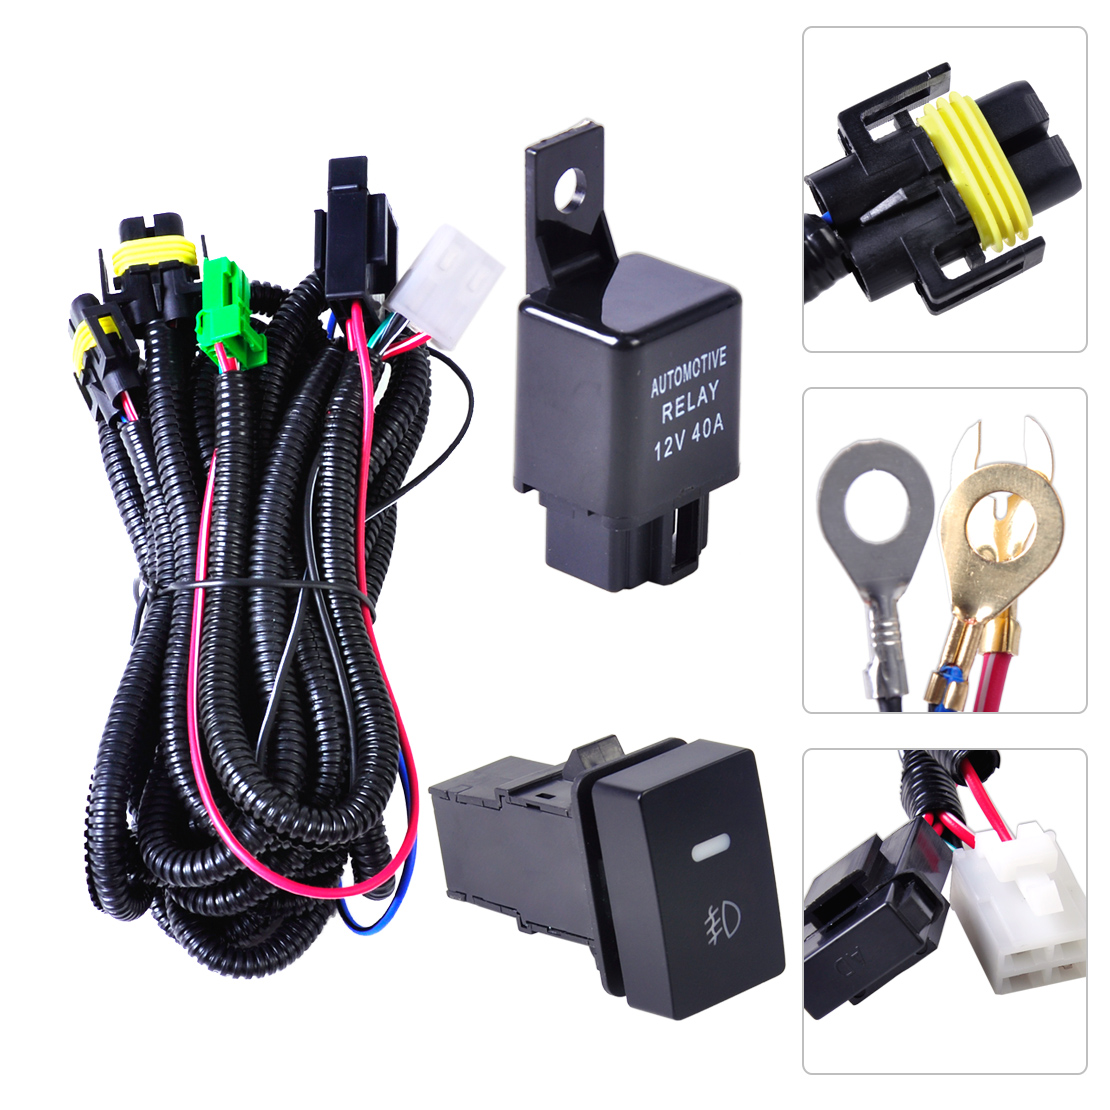 Citall H11 Fog Light Lamp Wiring Harness Sockets Wire Switch With 2007 Subaru Outback Aeproductgetsubject